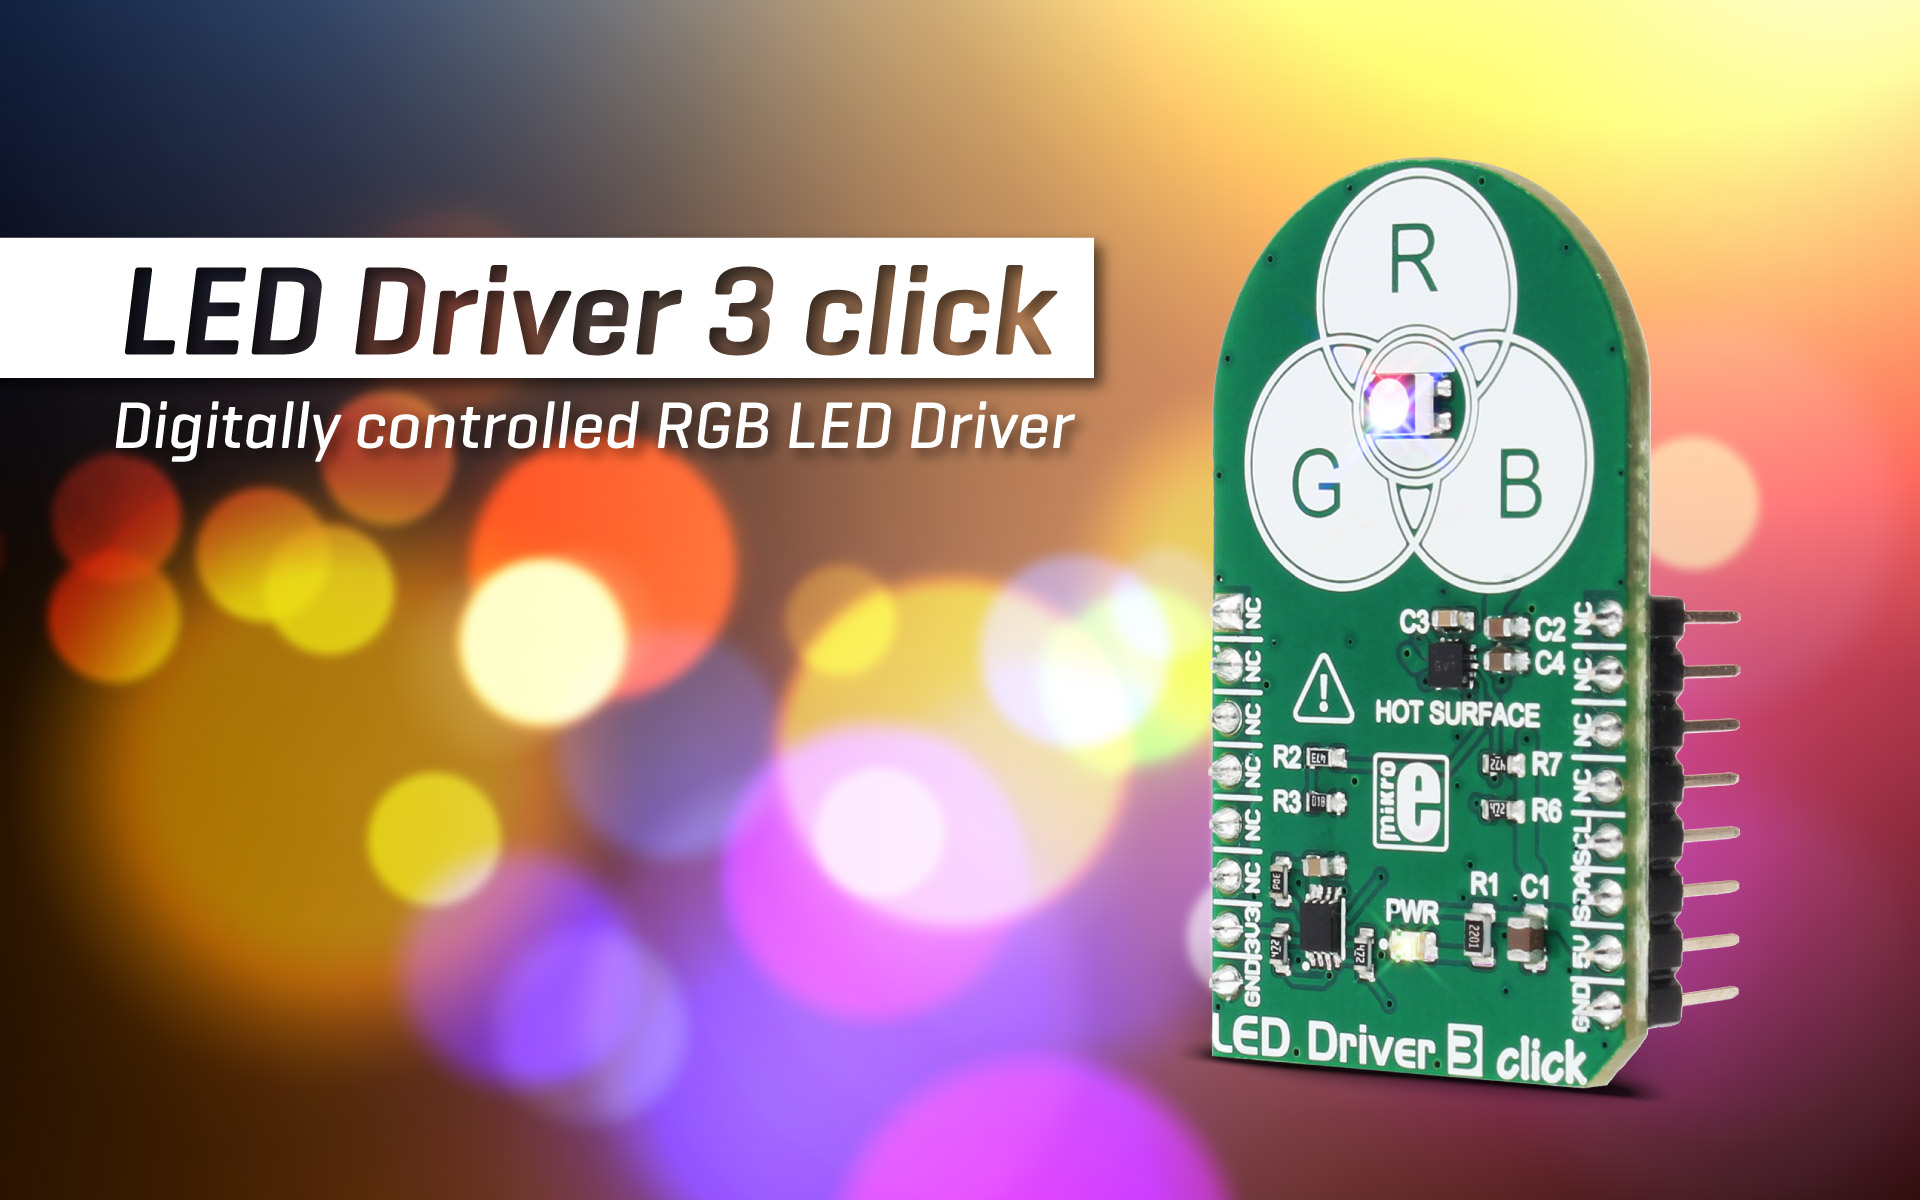 LED Driver 3 click - digitally control RGB LEDs